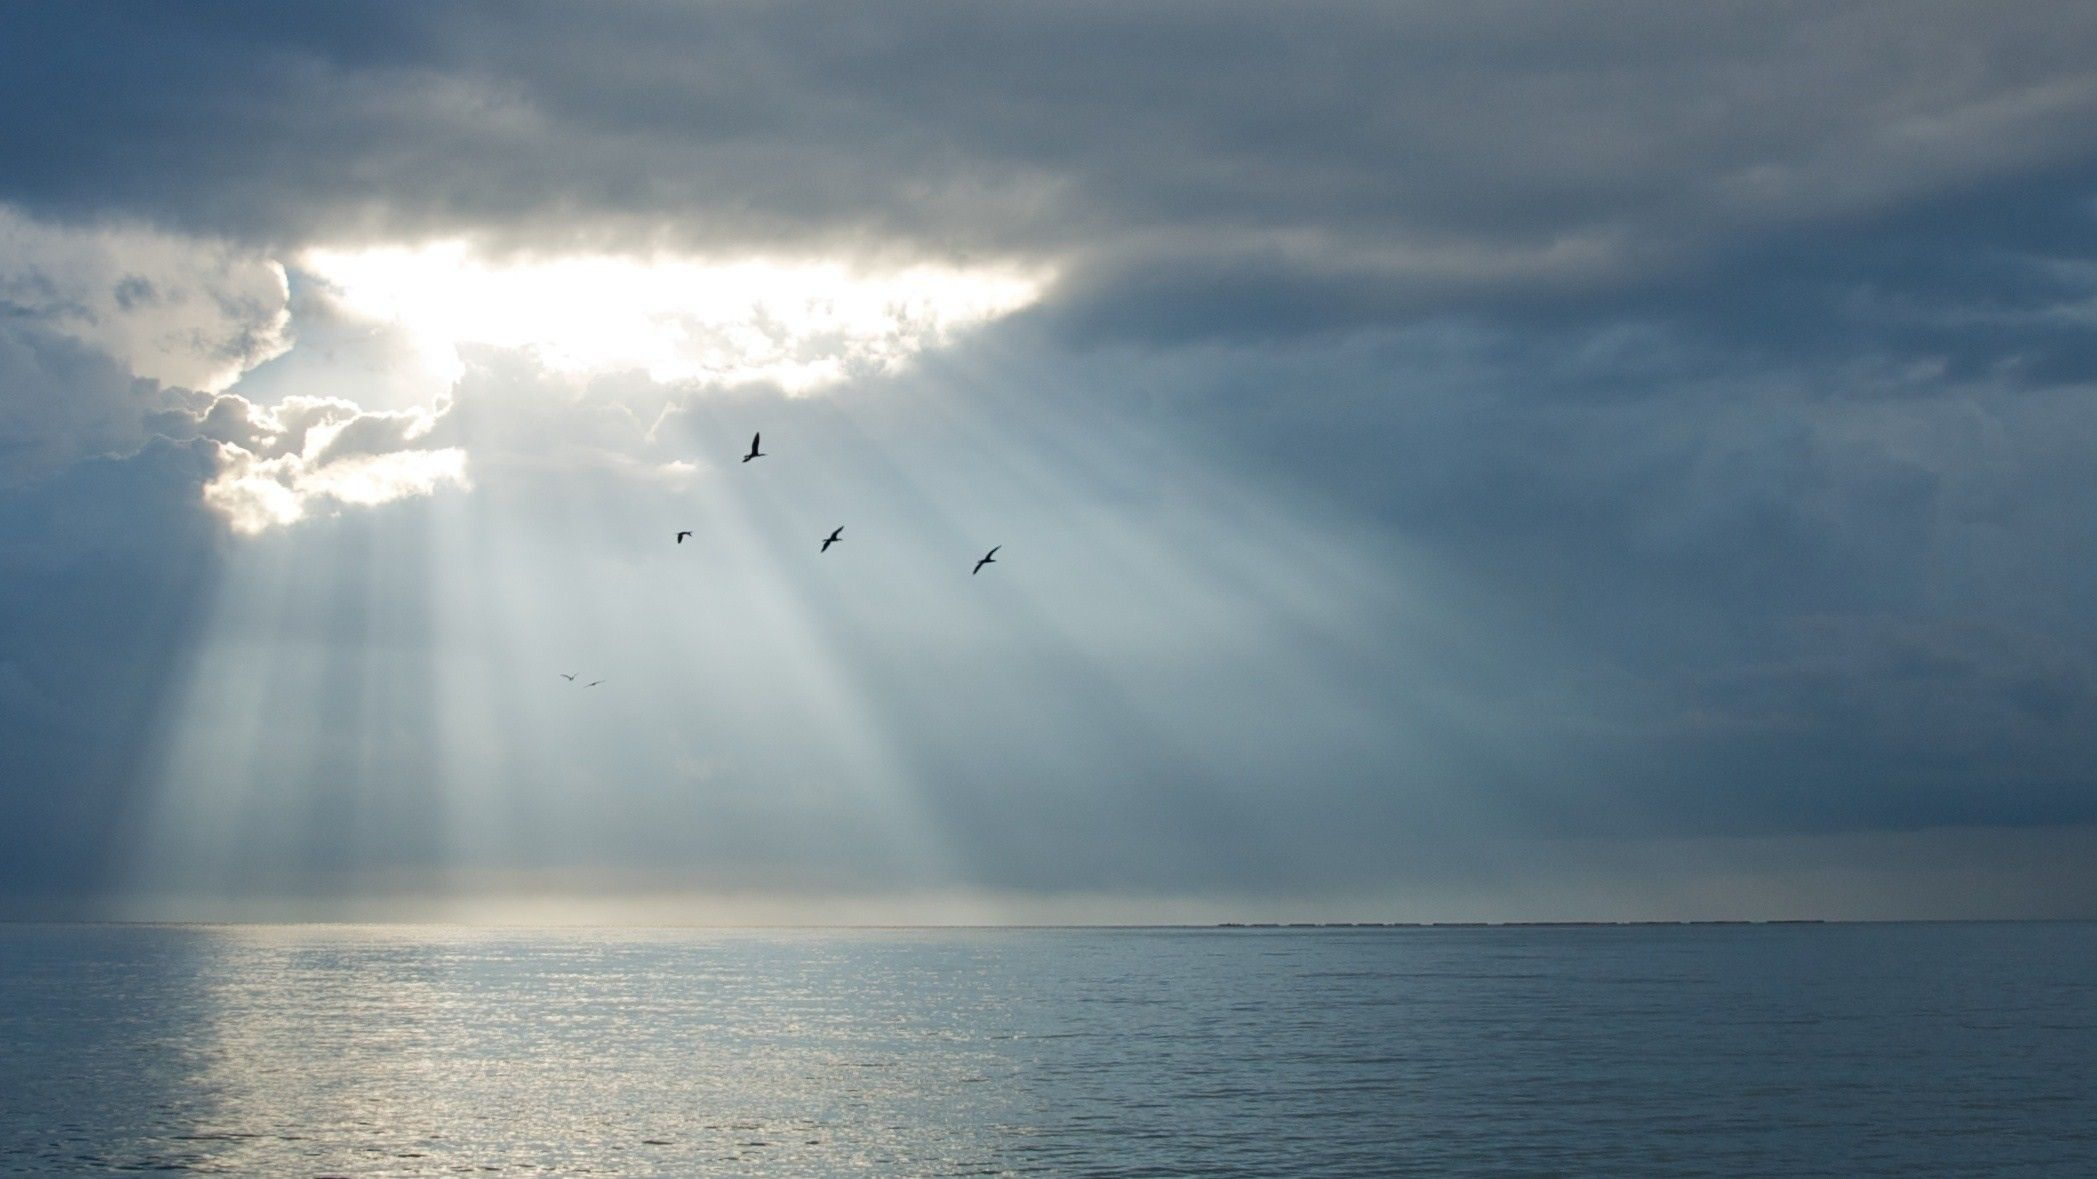 Sun rays break through a hole in a layer of clouds over the ocean.